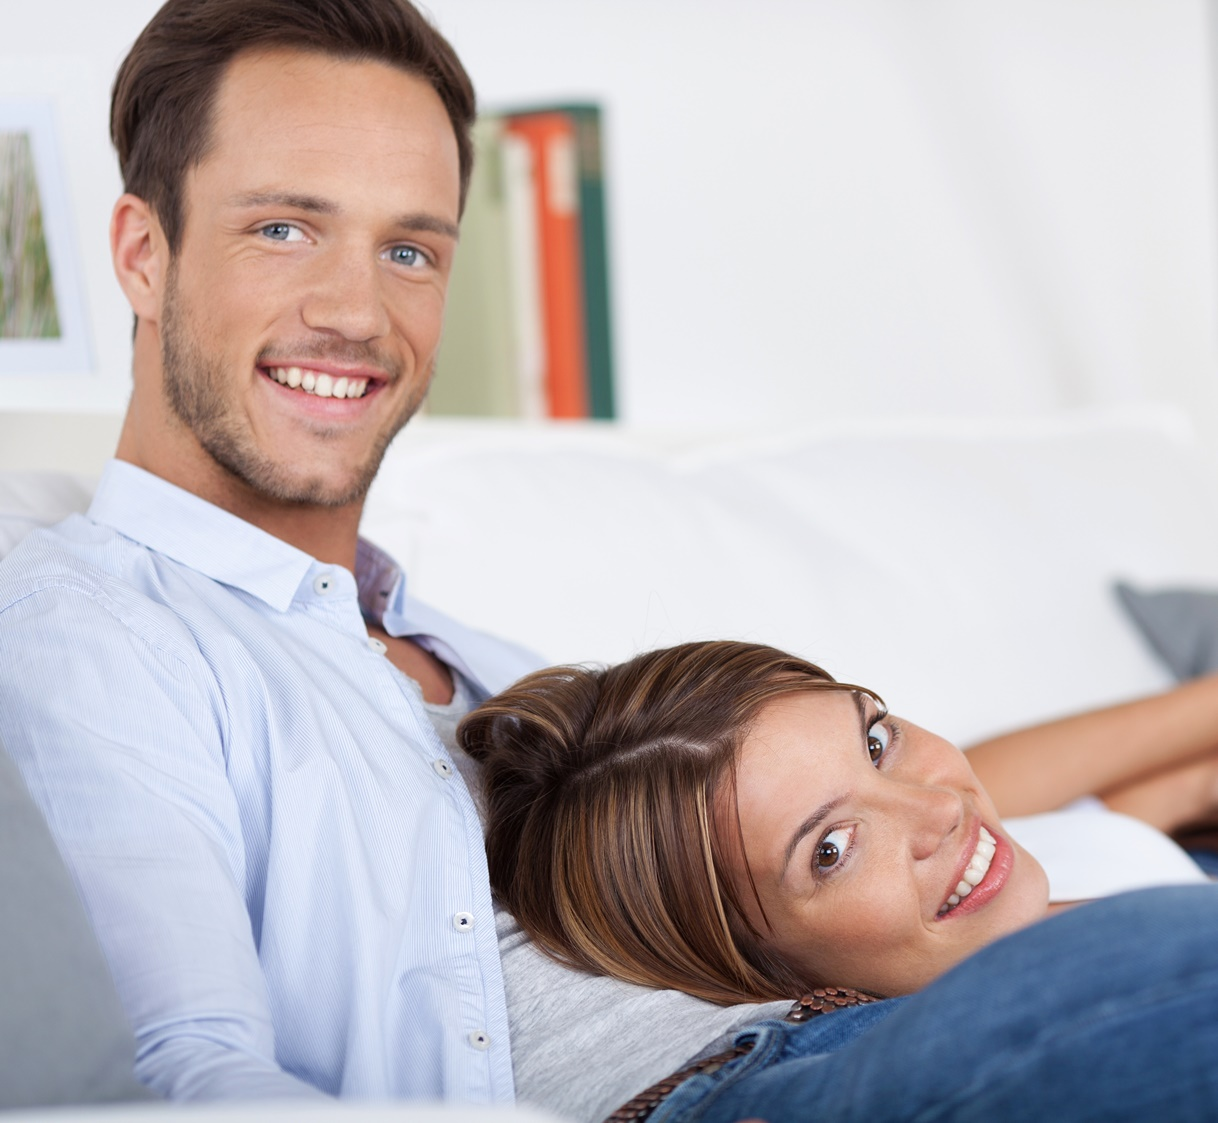 21162453 – smiling couple relaxing on couch in living room